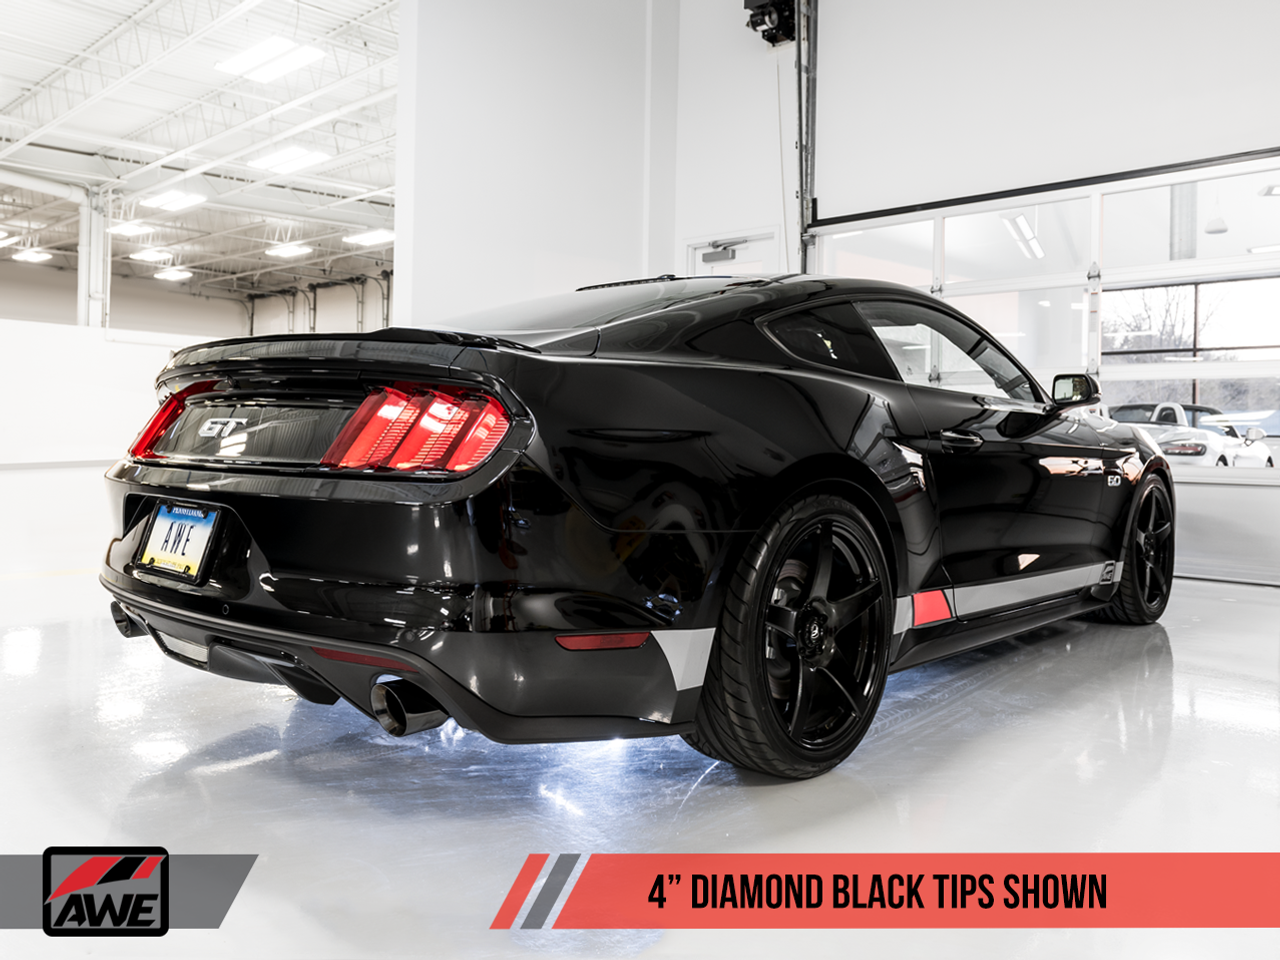 AWE Tuning Exhaust System - Ford Mustang GT - With Diamond Black Trims